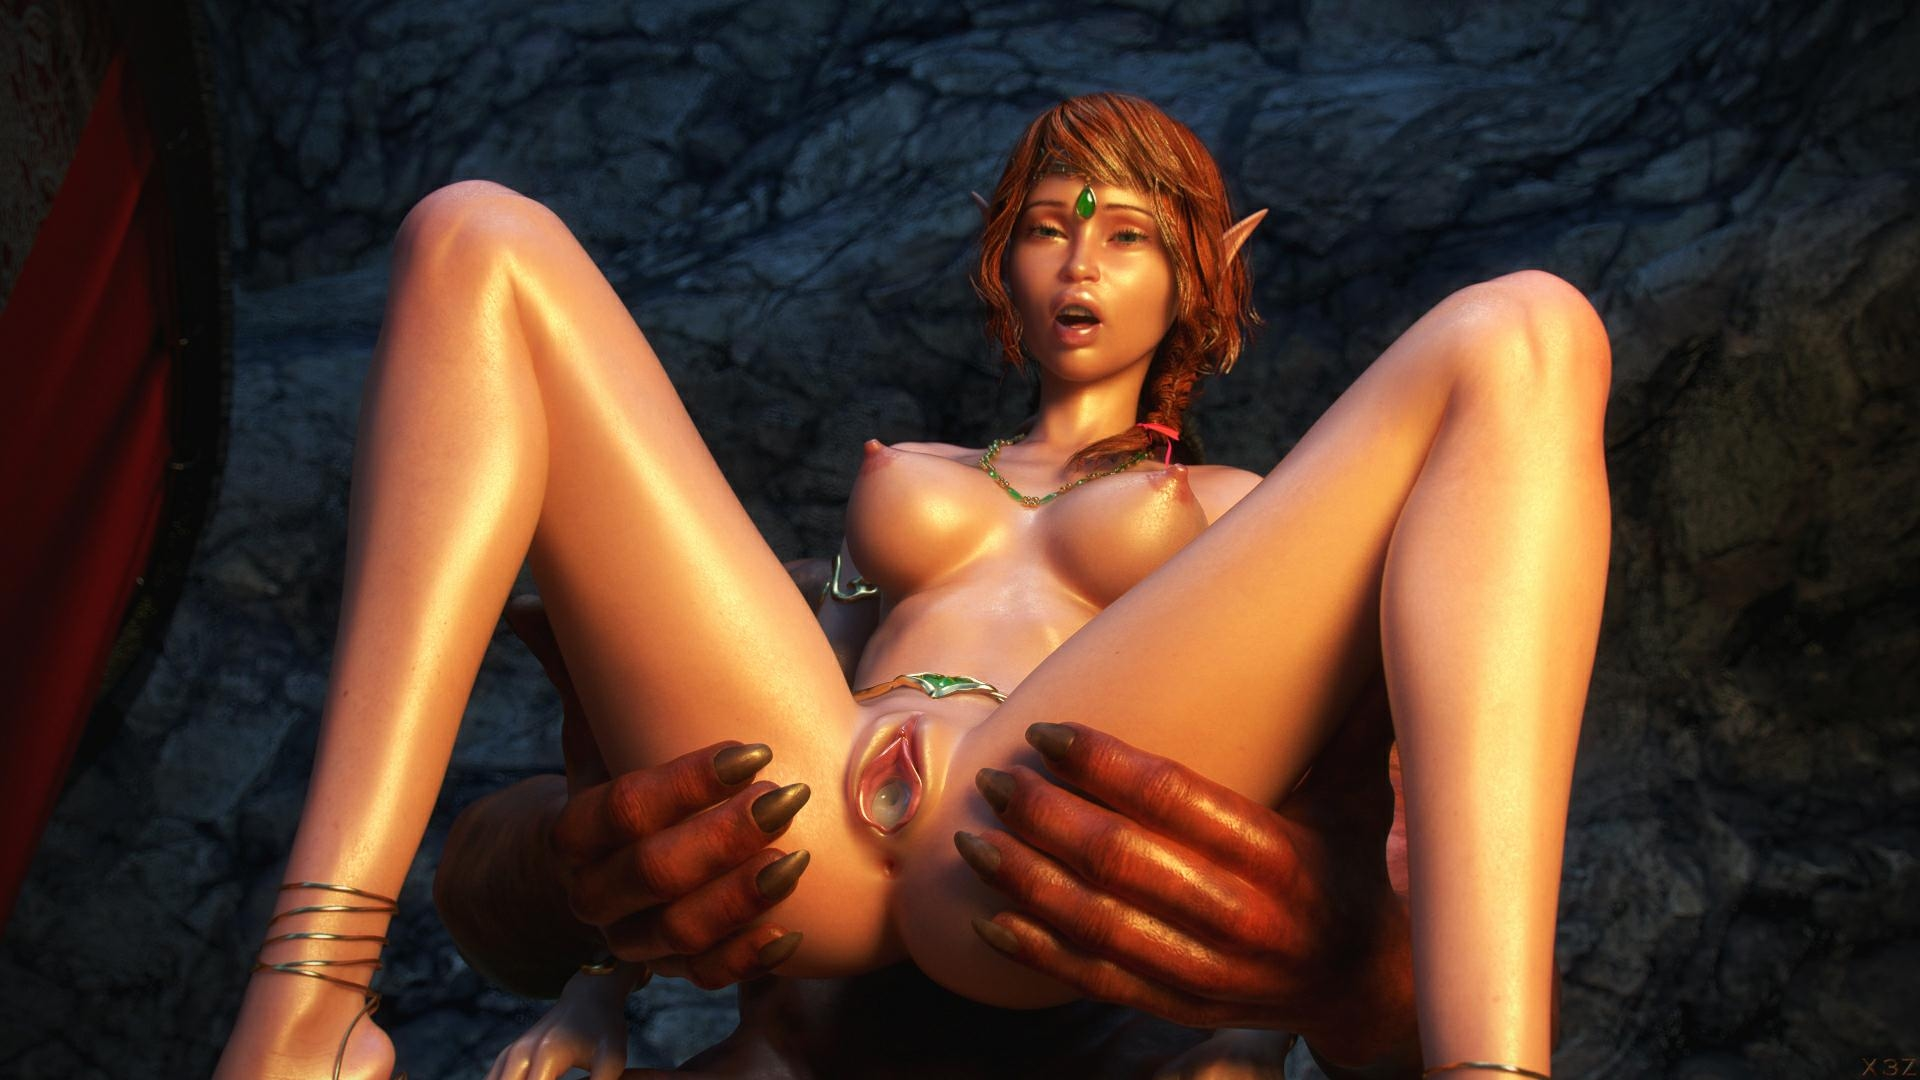 Elven princess getting fucked by orcs images sexy videos